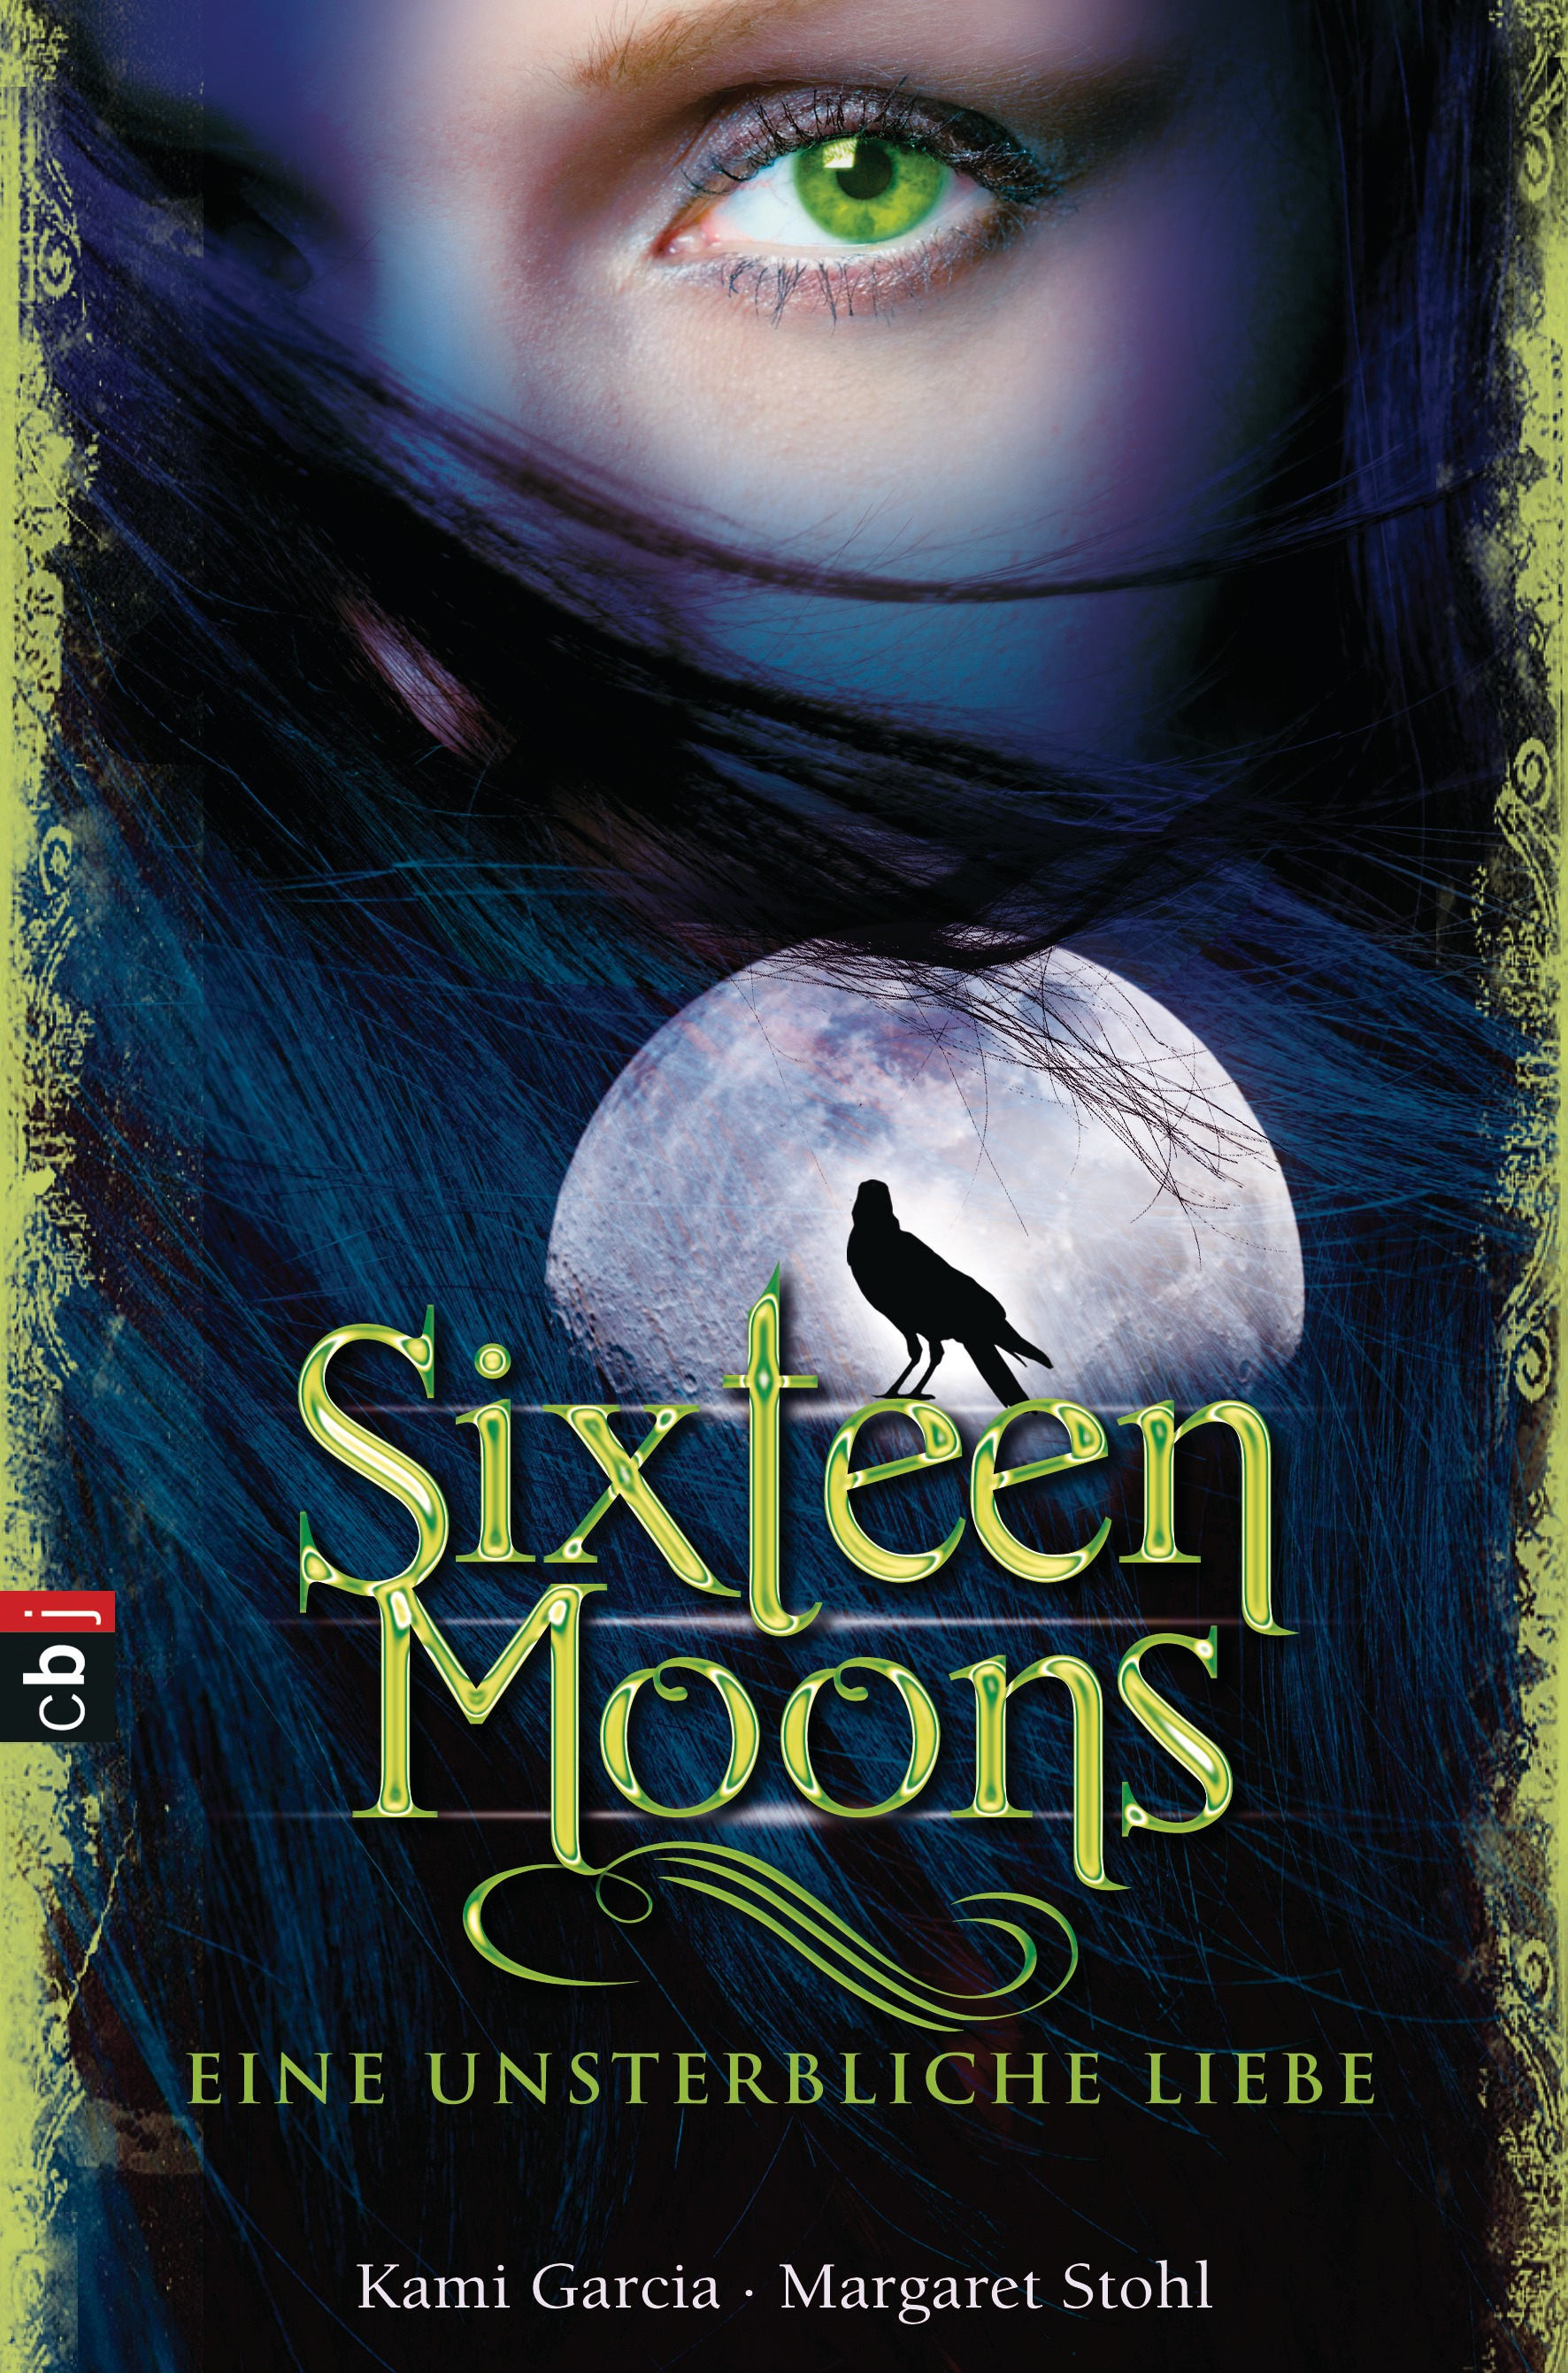 https://www.randomhouse.de/content/edition/covervoila_hires/Garcia_KStohl_MSixteen_Moons_104178.jpg